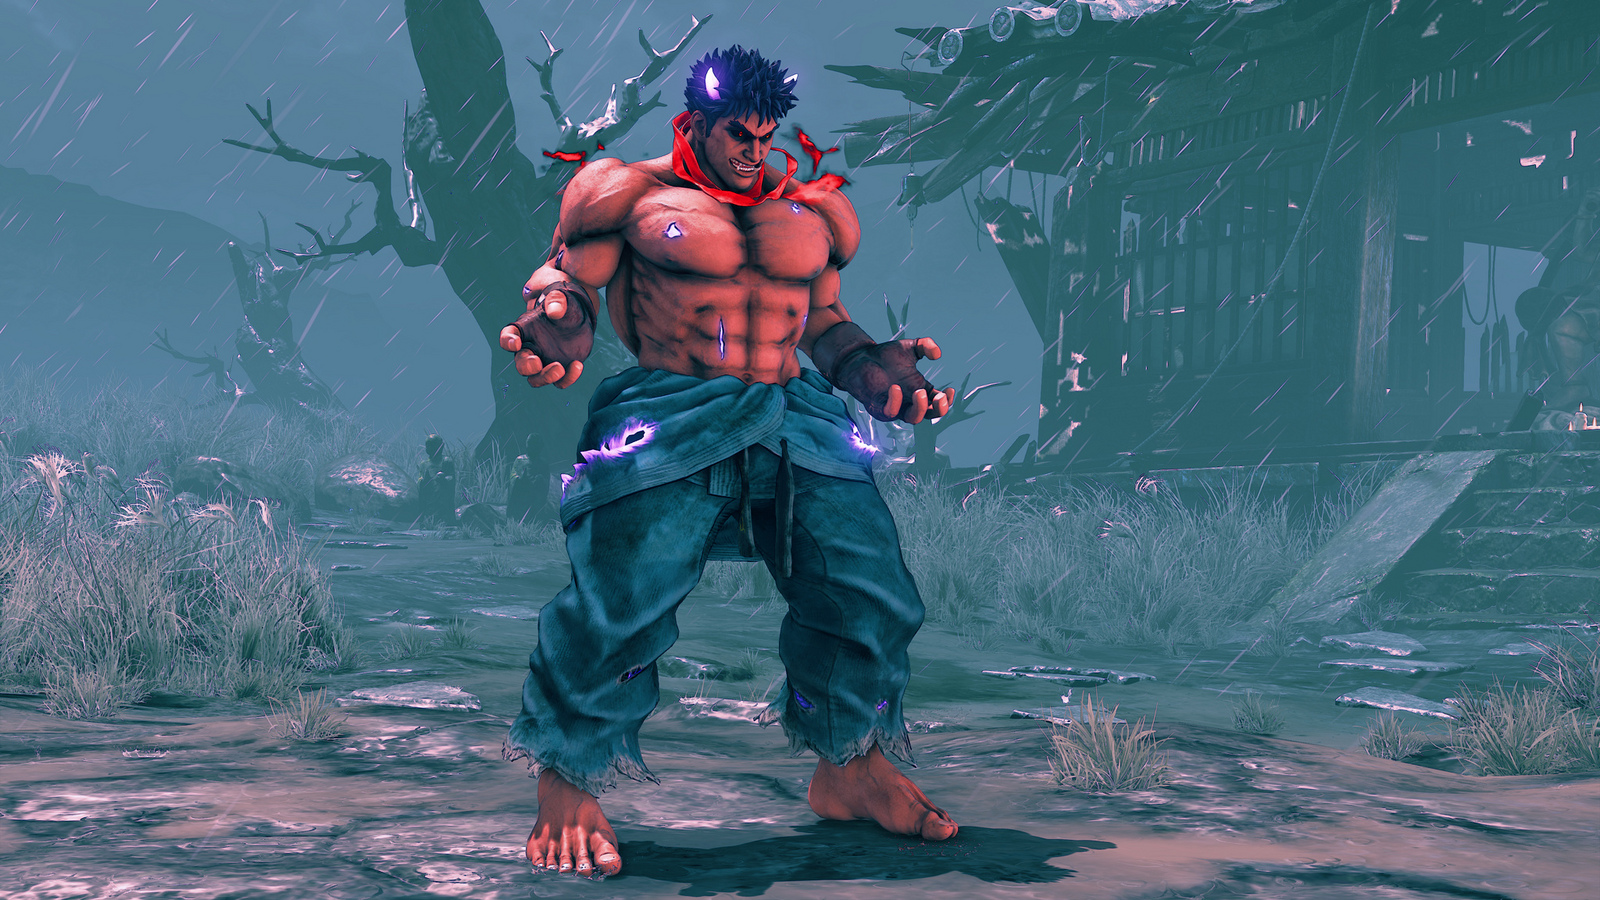 3d Rose Live Wallpaper For Pc Street Fighter V New Dlc Character Kage Balance Changes